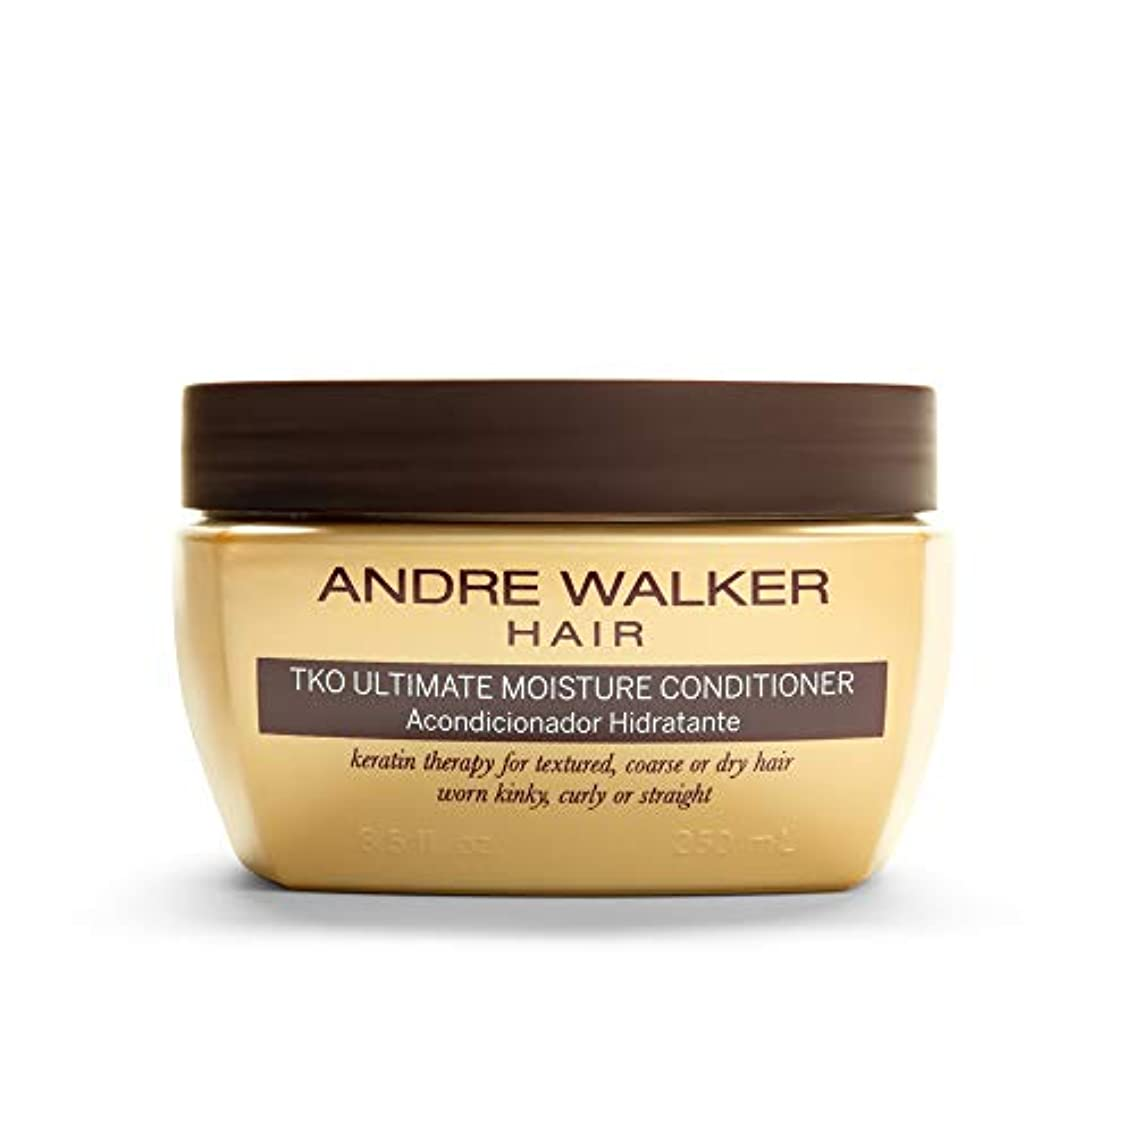 段階遠え雑多なAndre Walker Hair The Gold System TKO Ultimate Moisture Conditioner 8.5 fl oz. by Andre Walker Hair